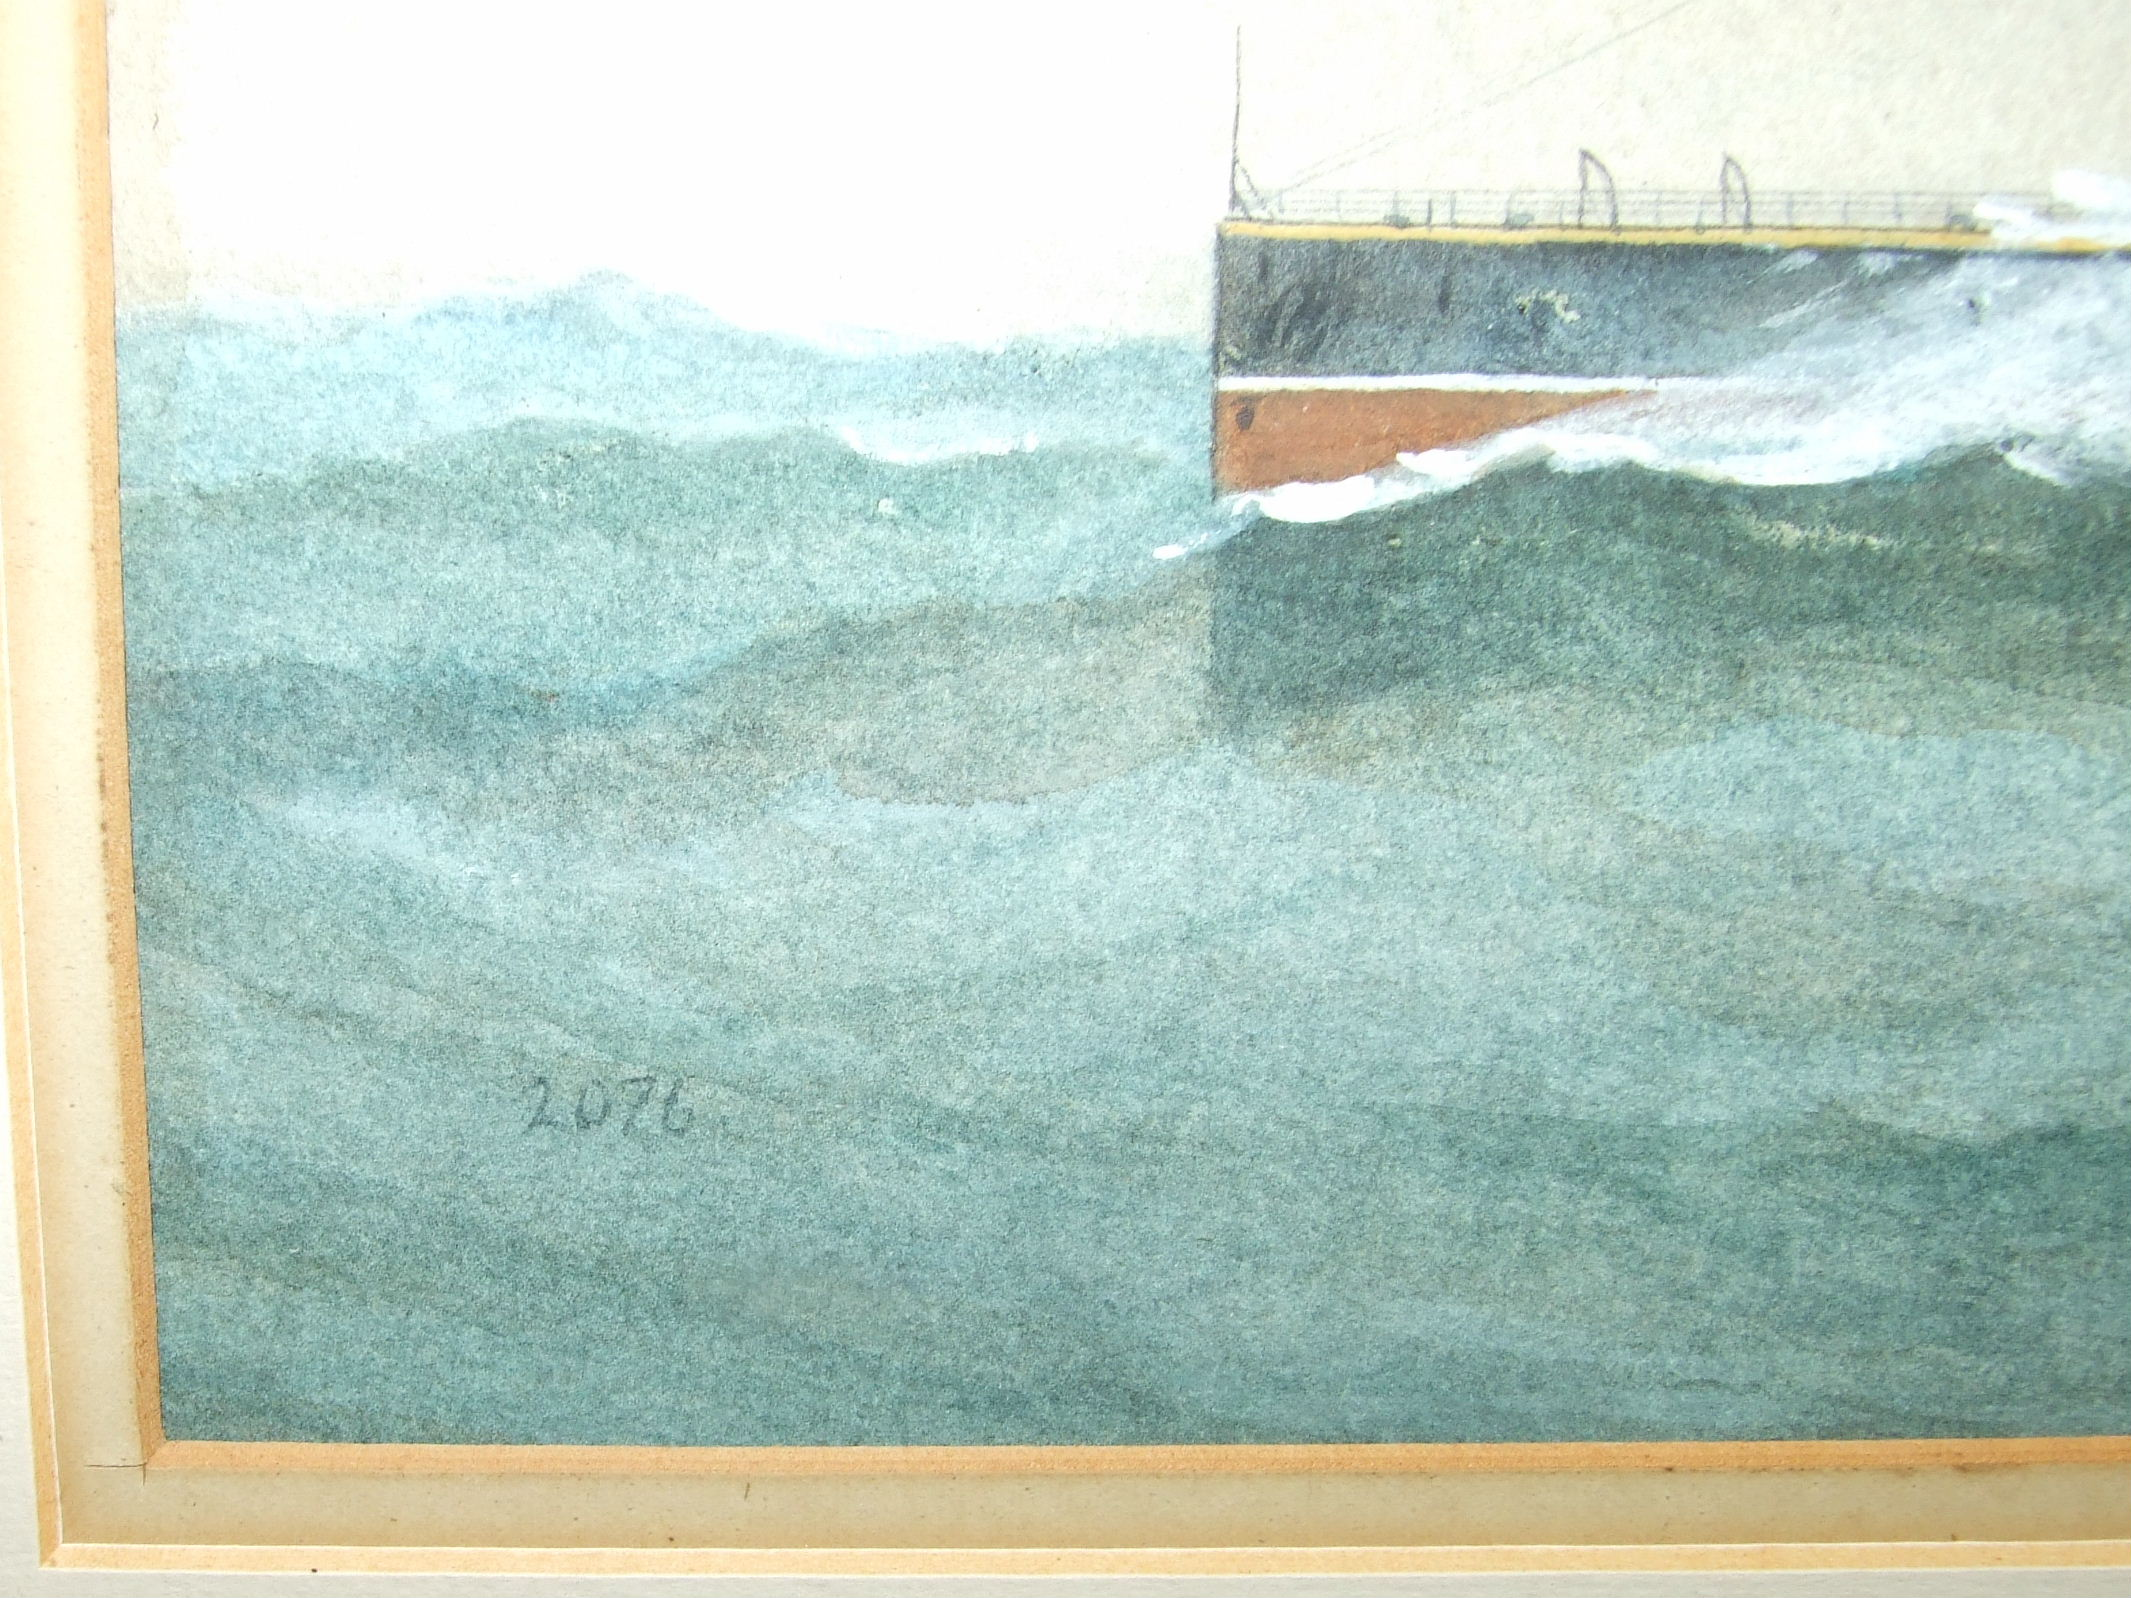 W Fred Mitchell (1845-1914) HMS CAMPERDOWN Signed watercolour, dated 1903 and numbered 2076, 24.5 - Image 3 of 3